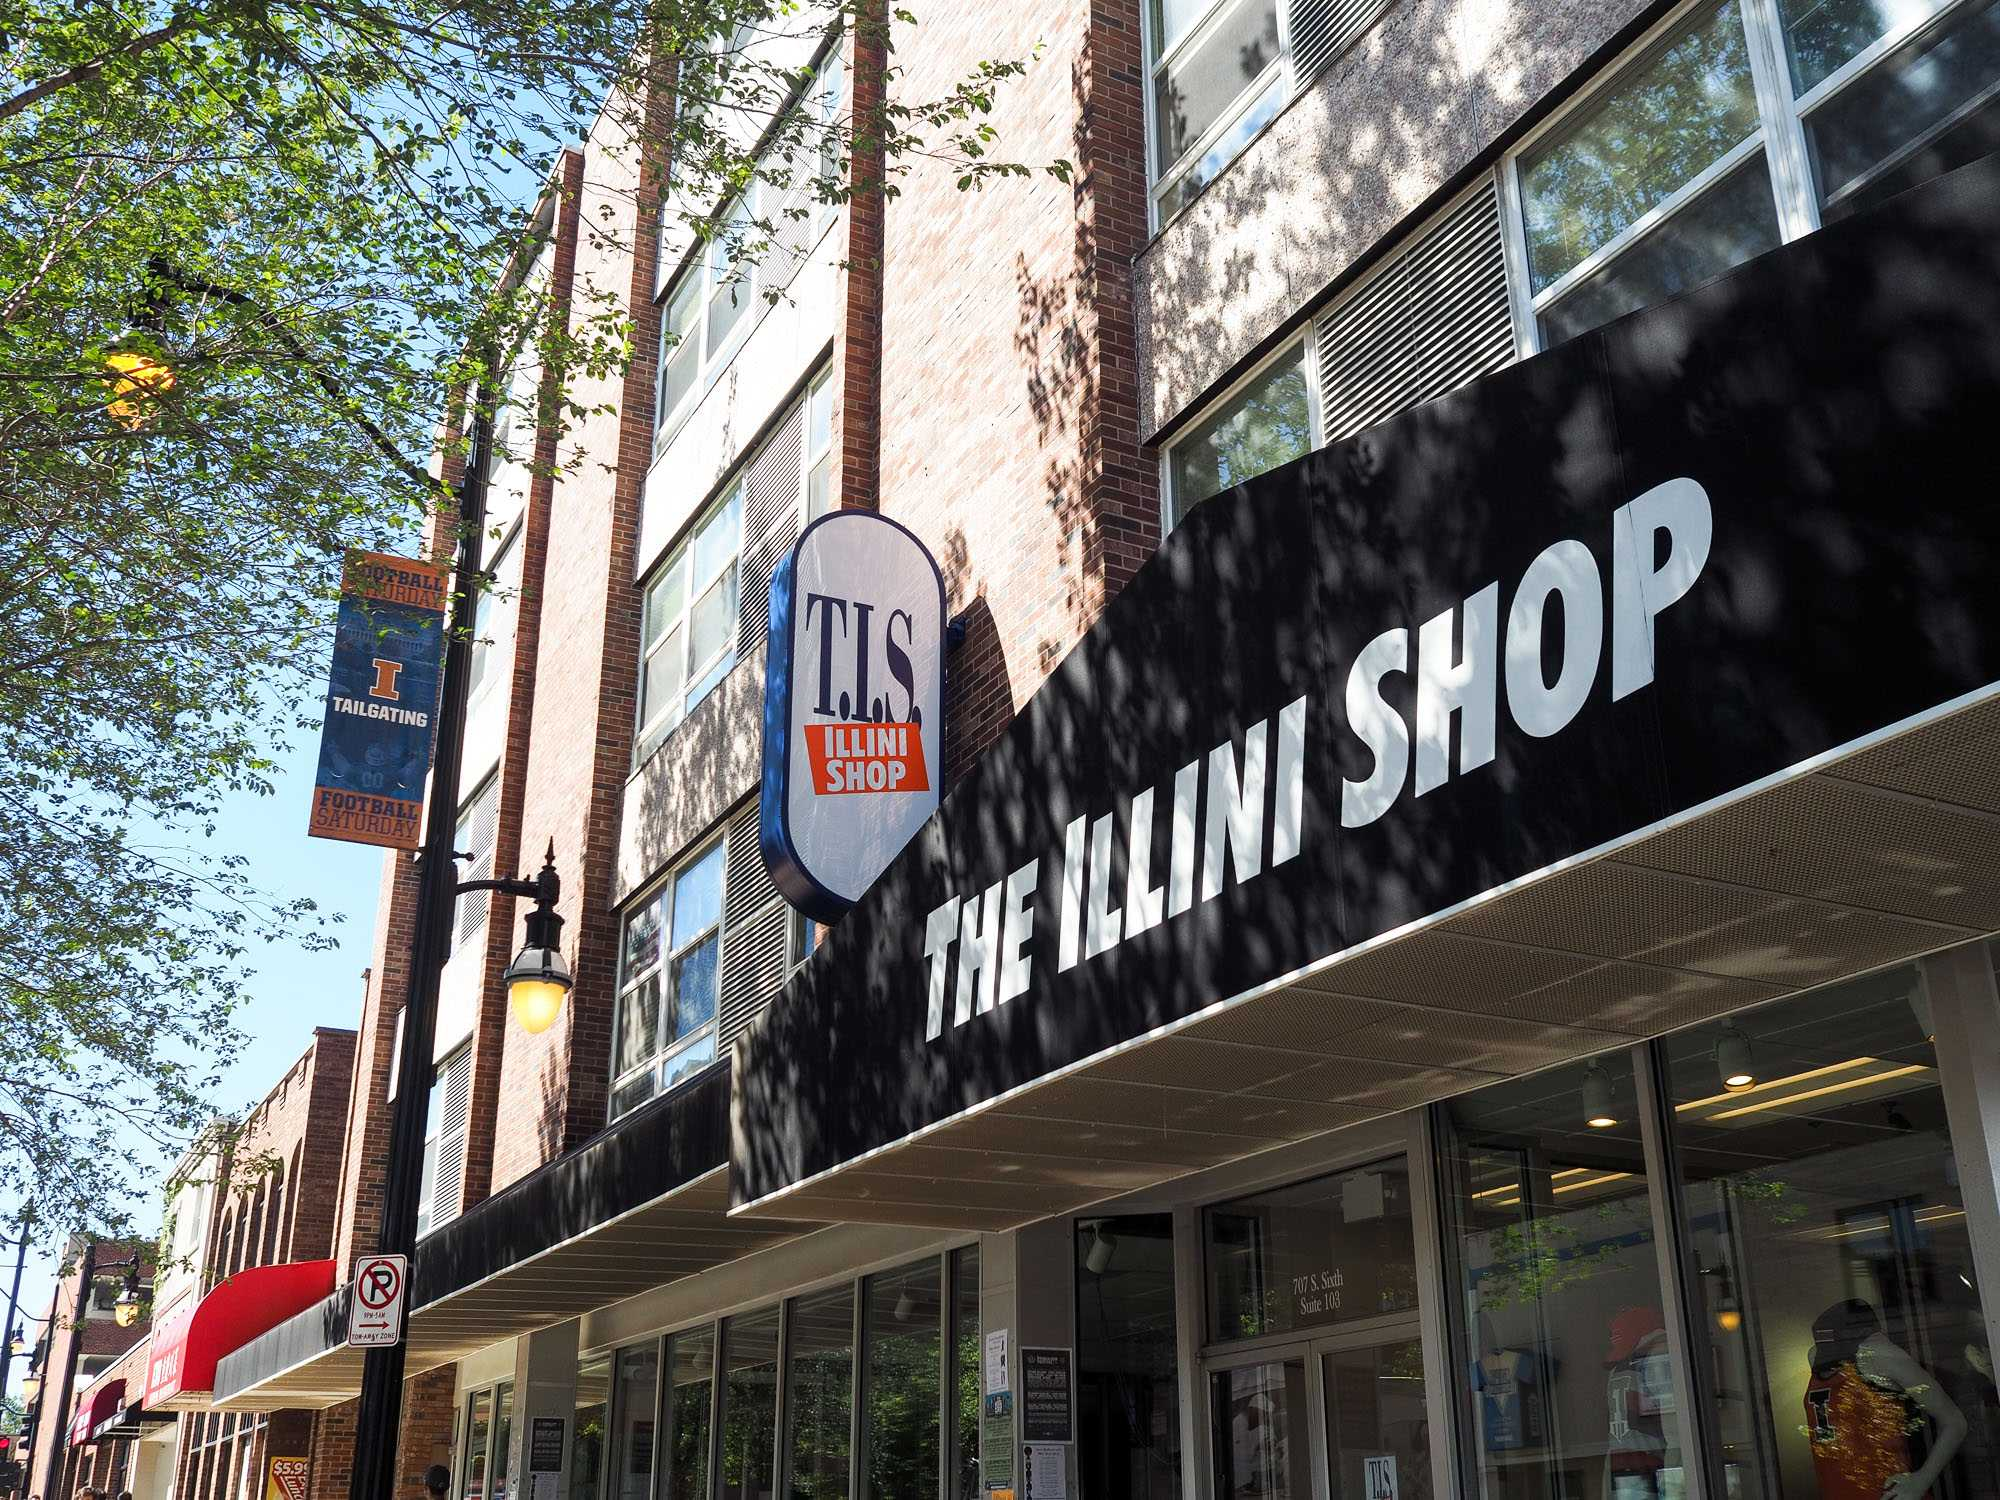 T.I.S. — the former bookstore — is now The Illini Shop in Champaign. Because of this change, the Illini Union Bookstore is now the sole bookstore on campus.